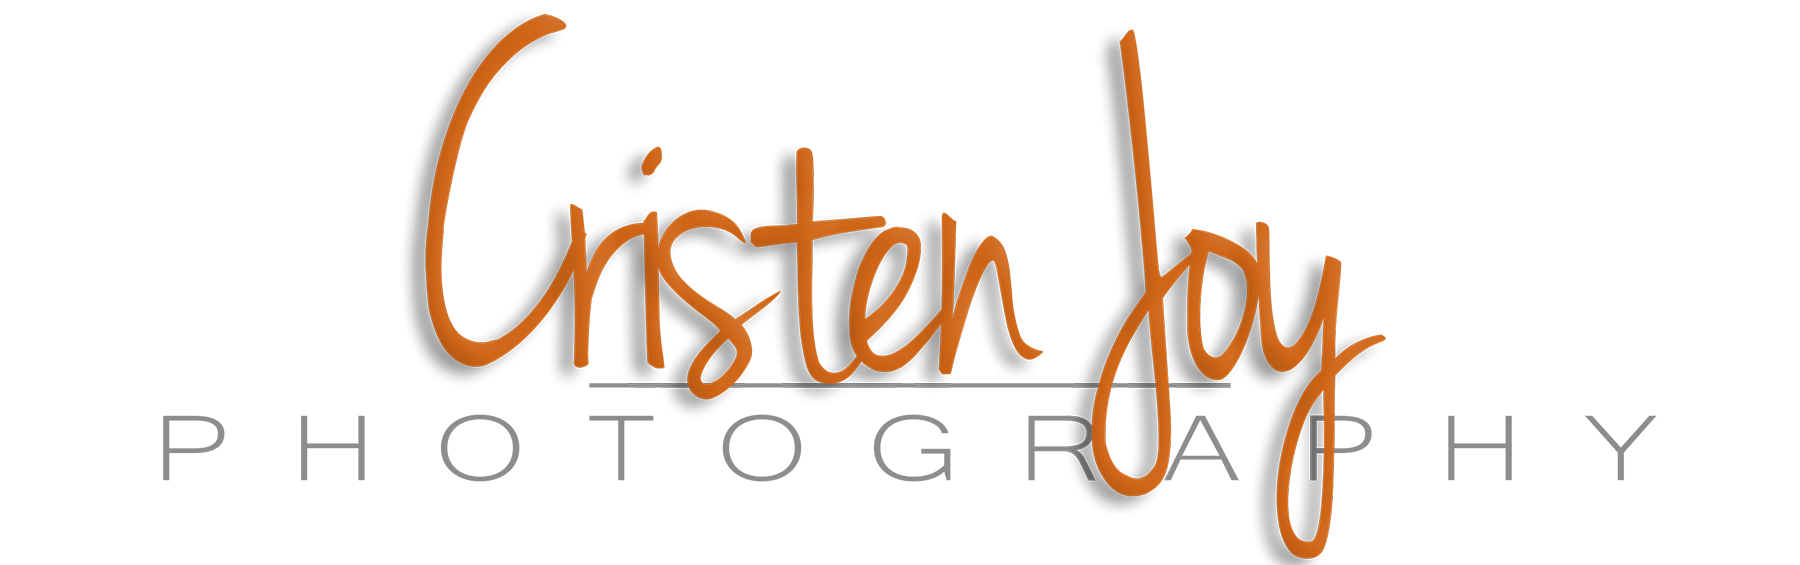 Cristen Joy Photography